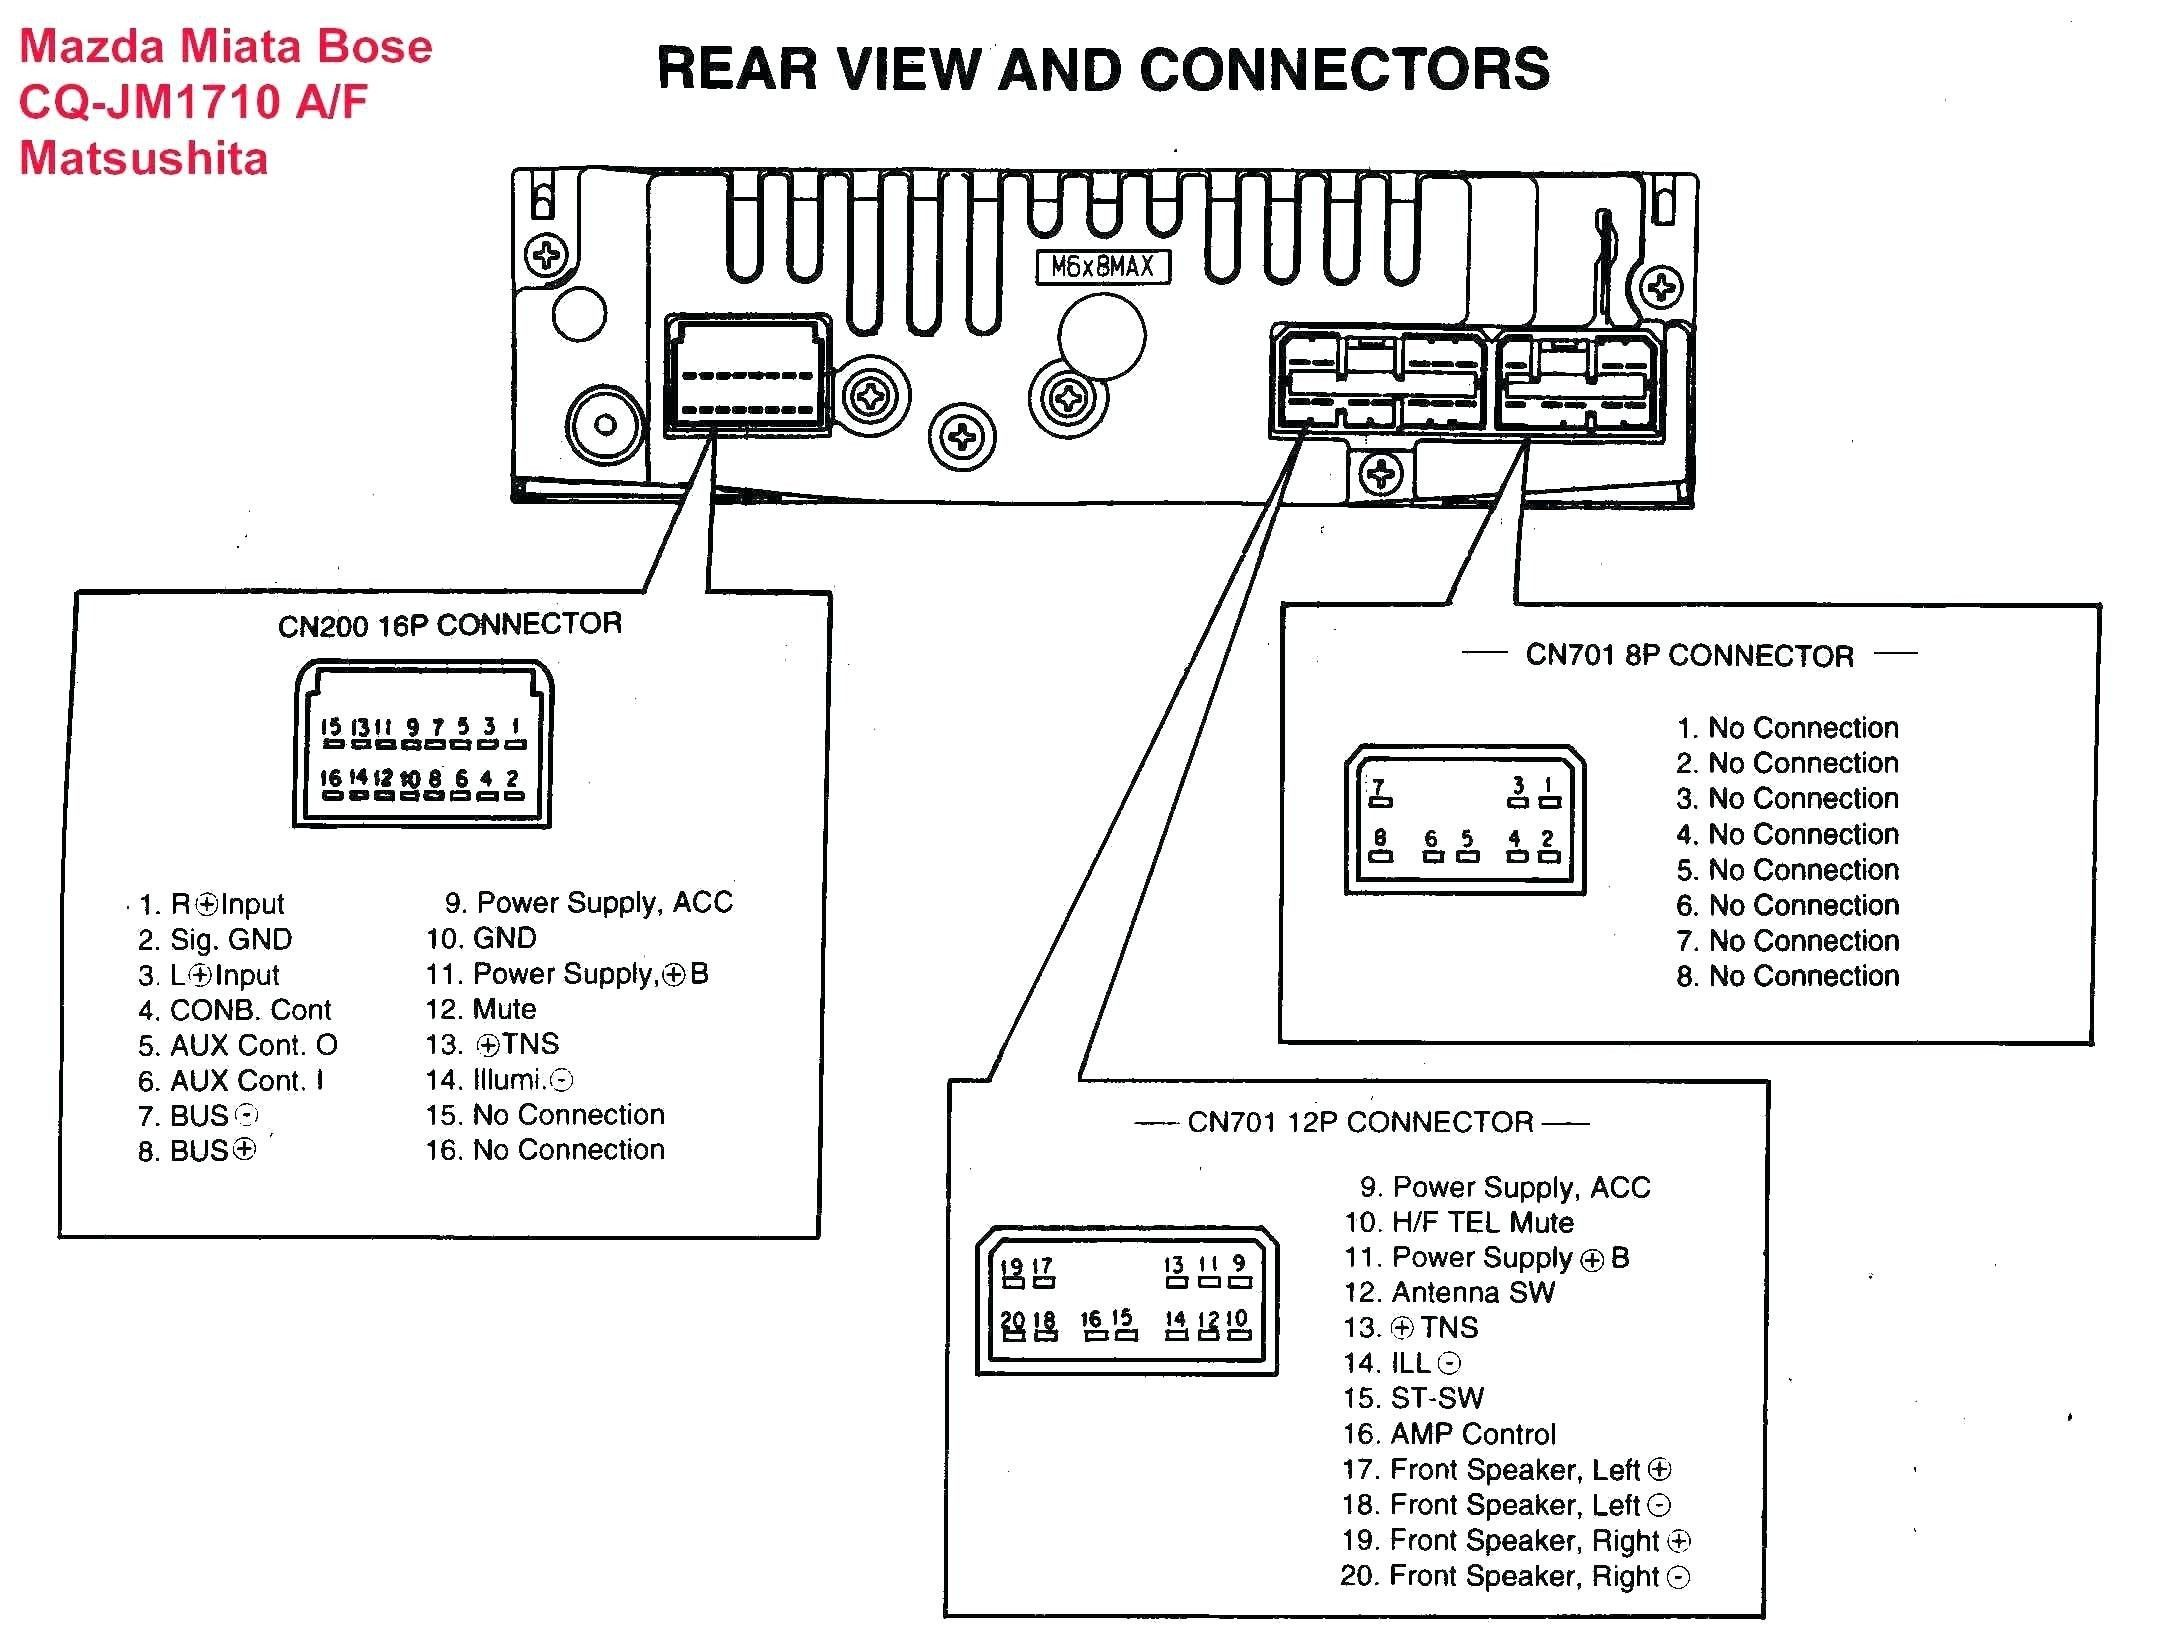 New Bmw E46 Pdc Wiring Diagram Diagram Diagramtemplate Diagramsample Car Stereo Sony Car Stereo Car Stereo Systems